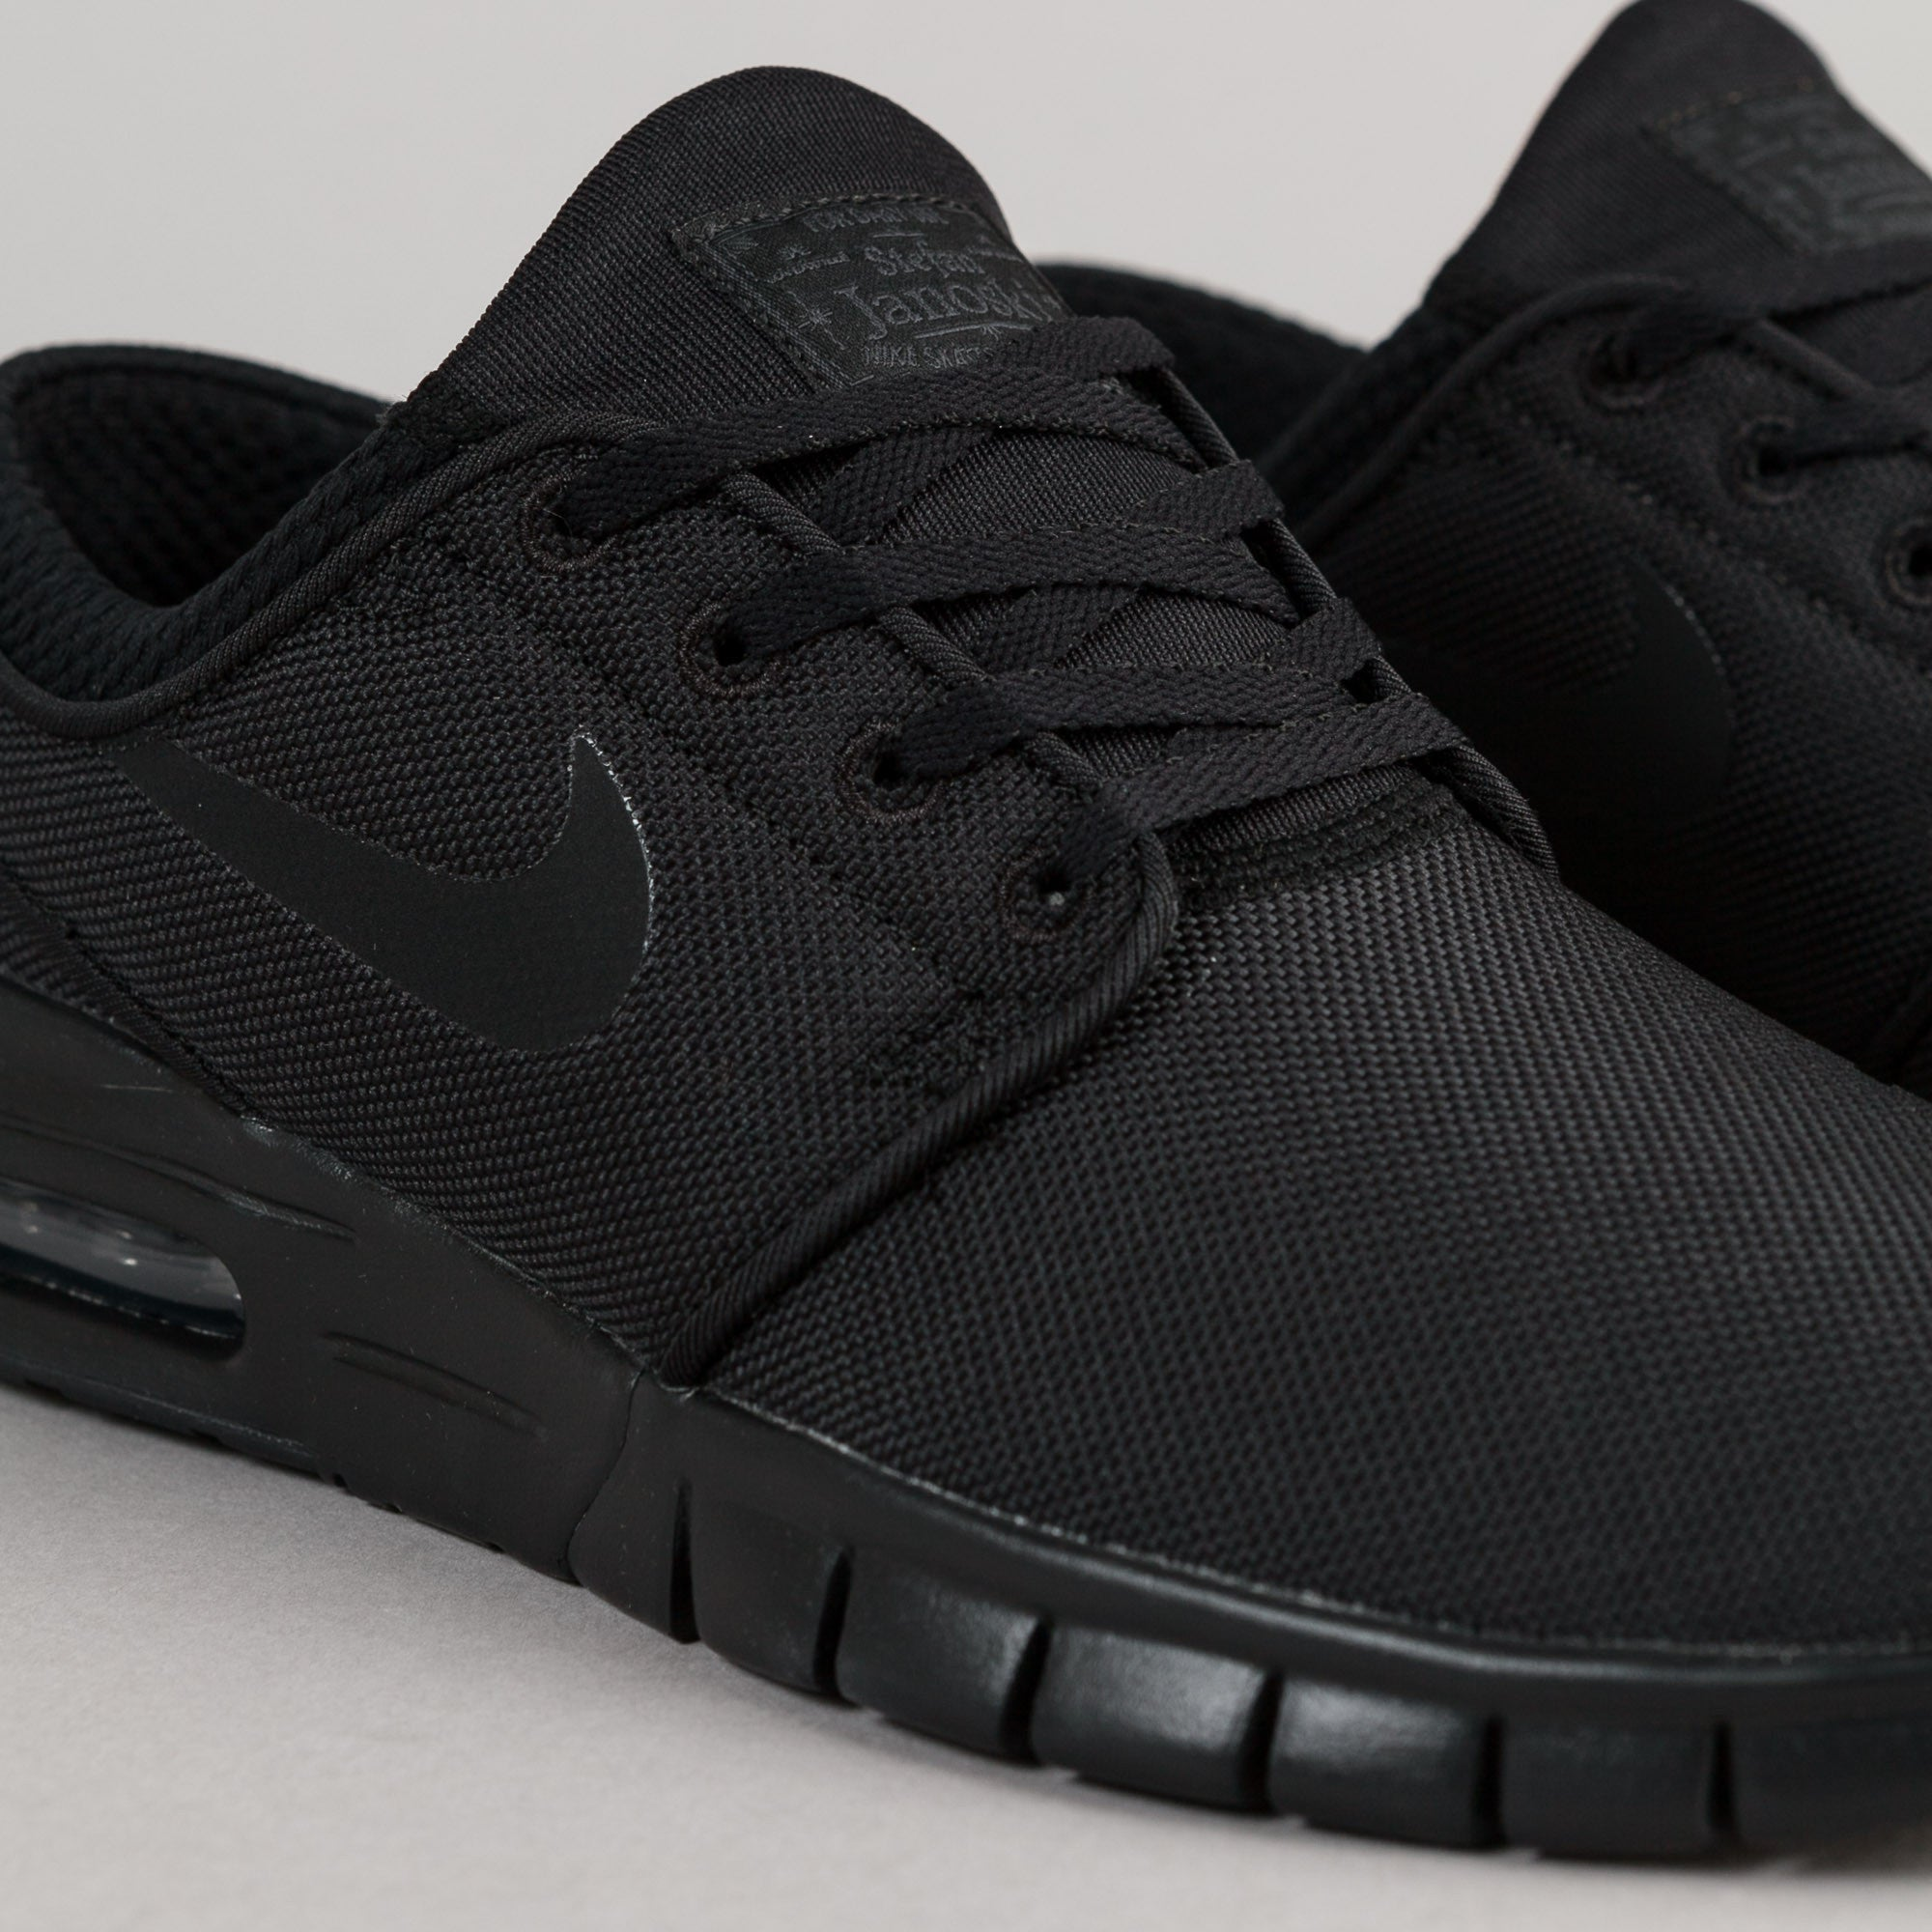 Nike SB Stefan Janoski Max Shoes - Black / Black - Anthracite